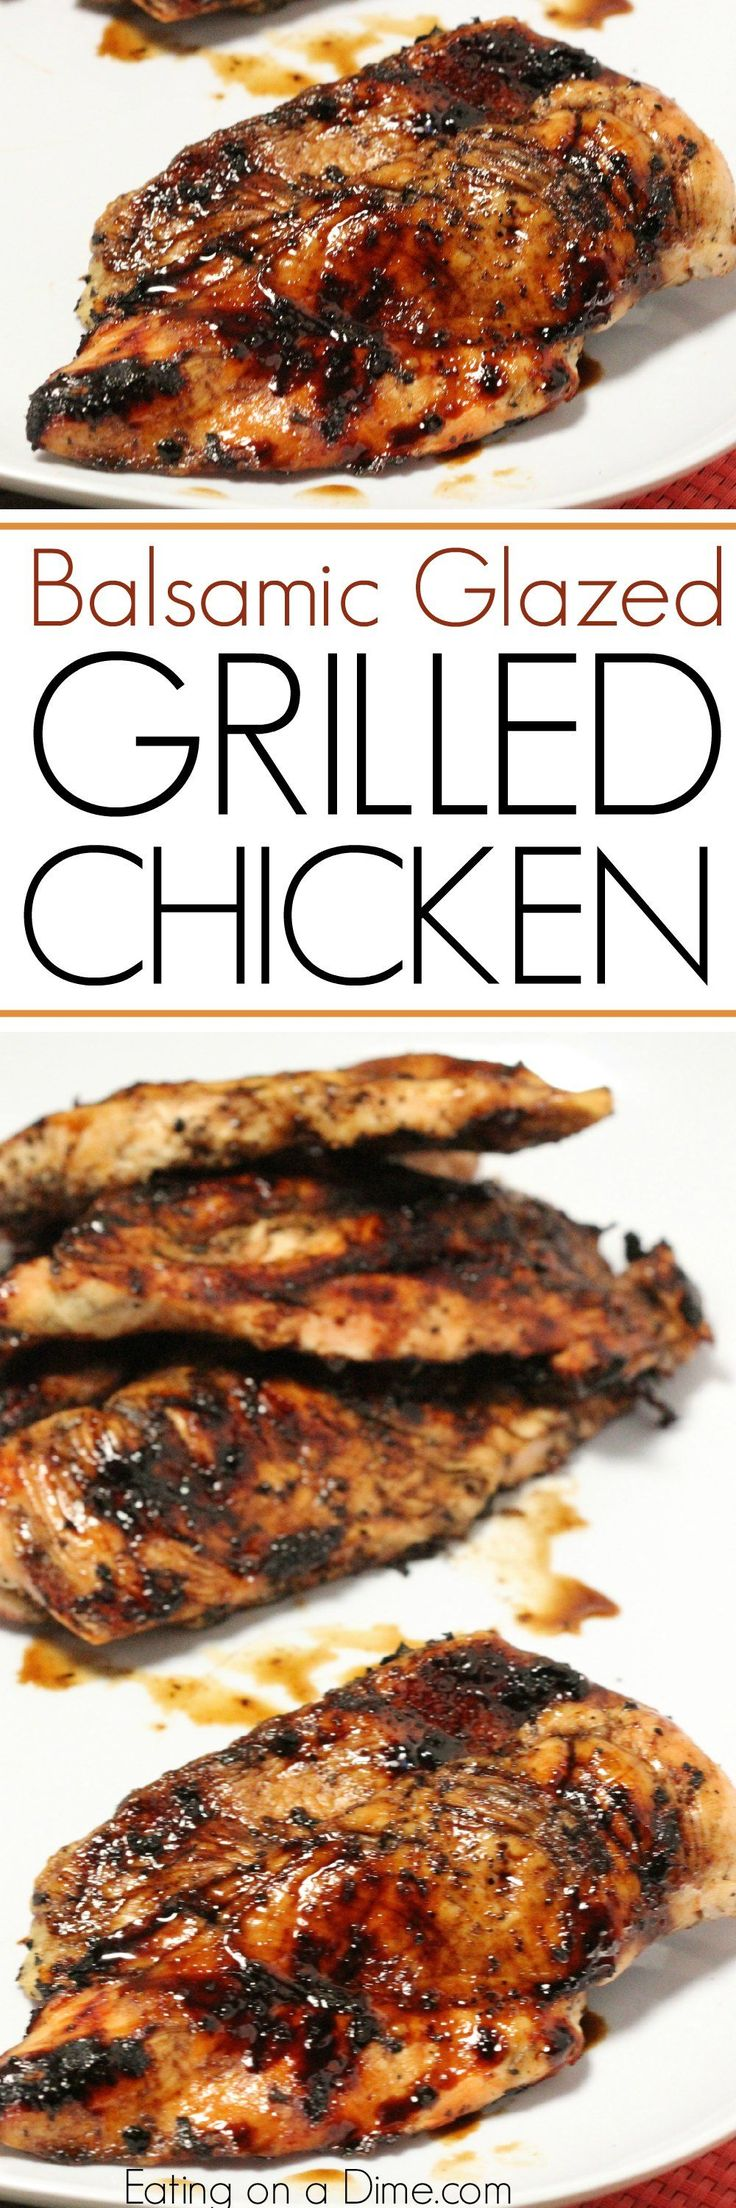 Here is an easy grilled chicken recipe. Try this balsamic glazed chicken today! This is our favorite quick and and easy chicken recipe.